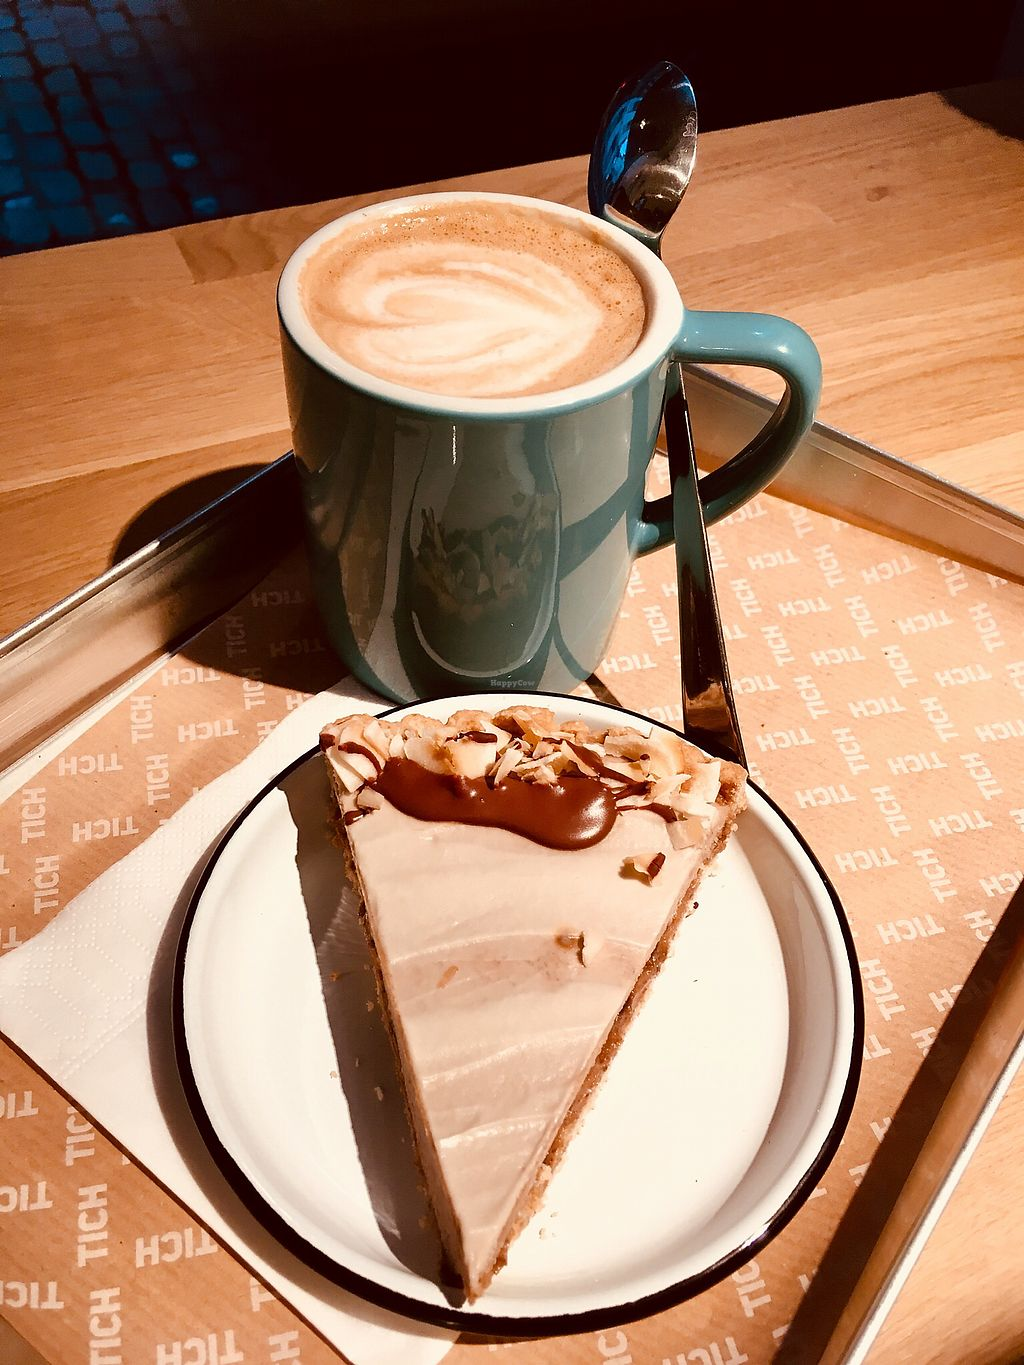 "Photo of TICH Healthy Living  by <a href=""/members/profile/VeganJack"">VeganJack</a> <br/>Banana cream pie & latte. Hmmm! <br/> December 27, 2017  - <a href='/contact/abuse/image/106346/339612'>Report</a>"